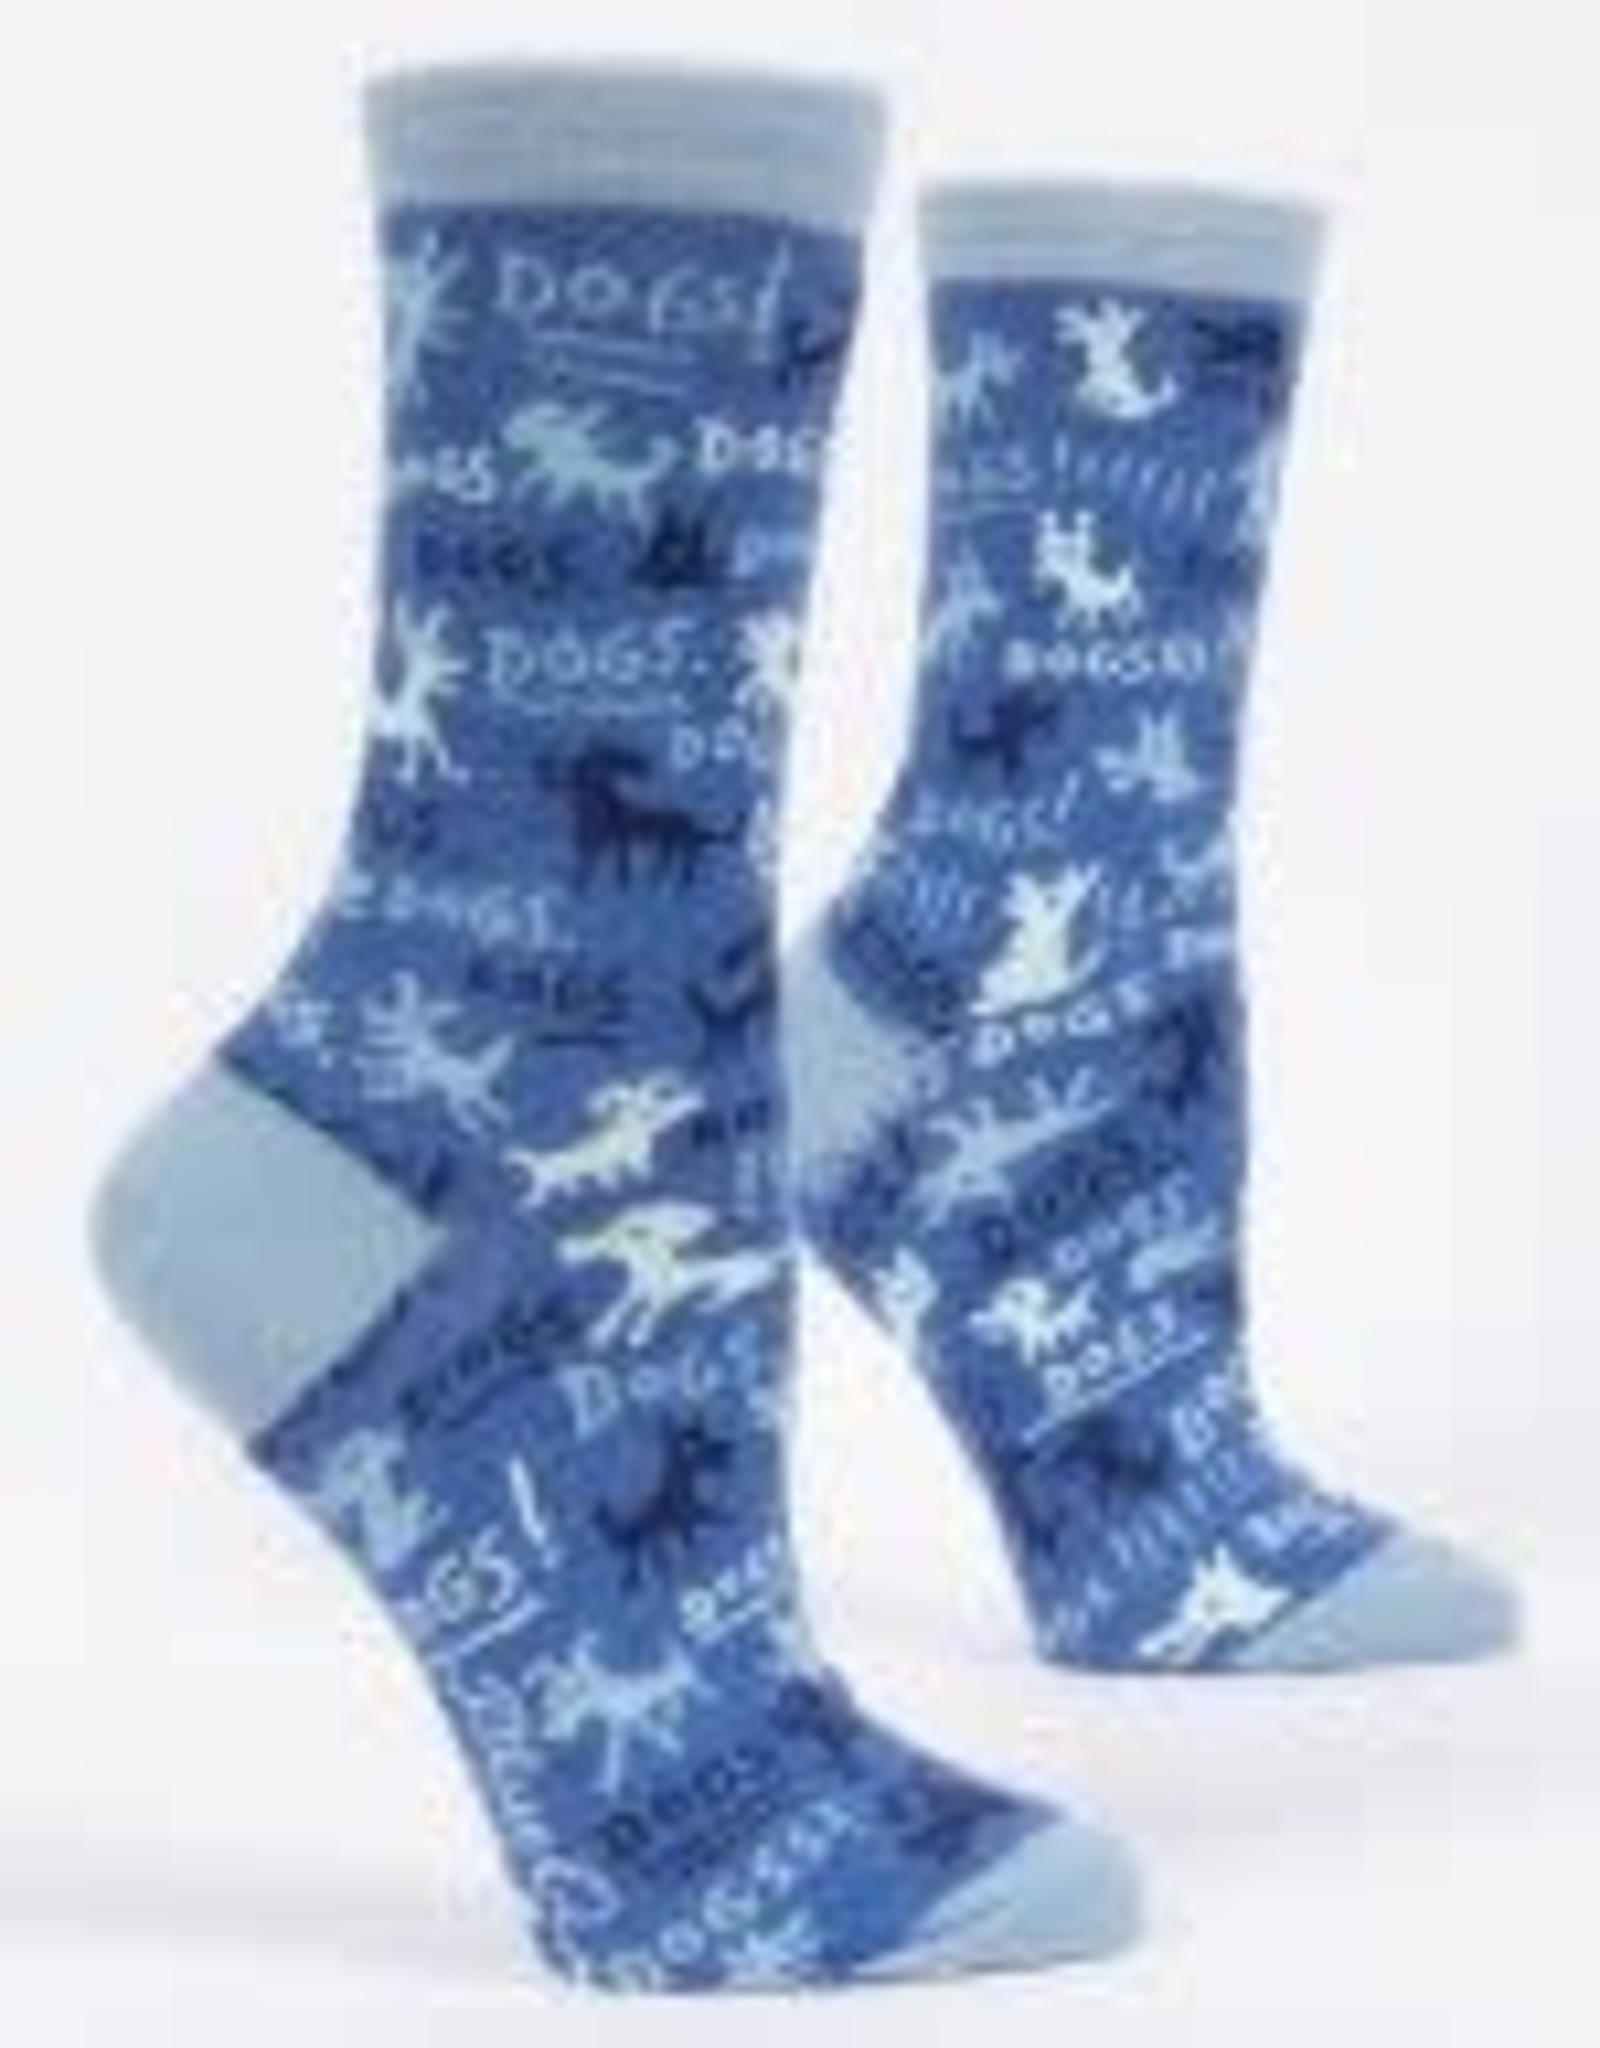 Blue Q Blue Q Women's Crew Socks Dogs!